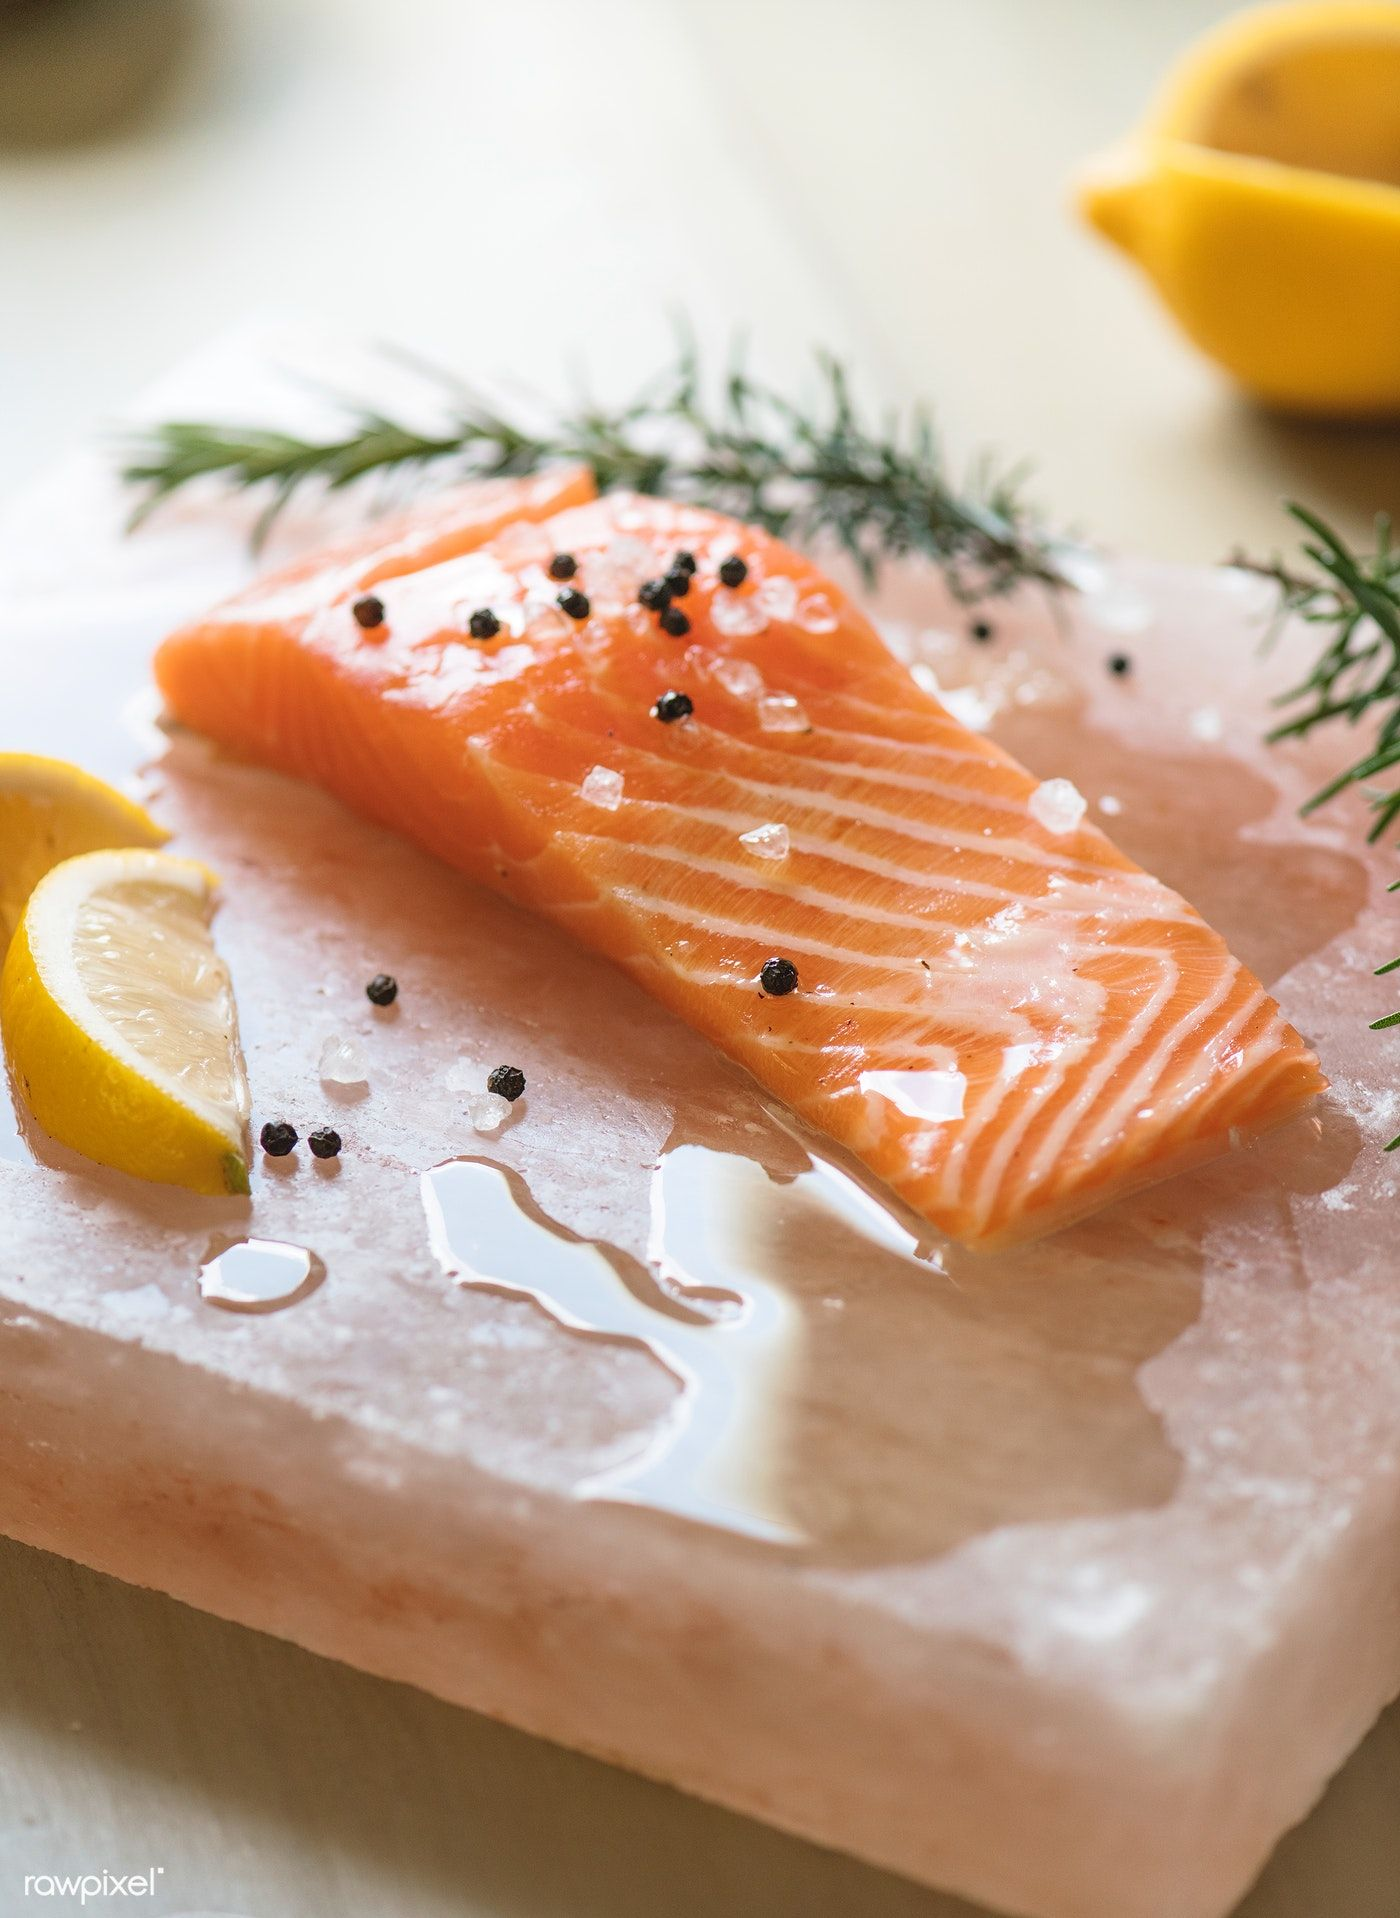 Download premium photo of Fresh salmon with thyme food